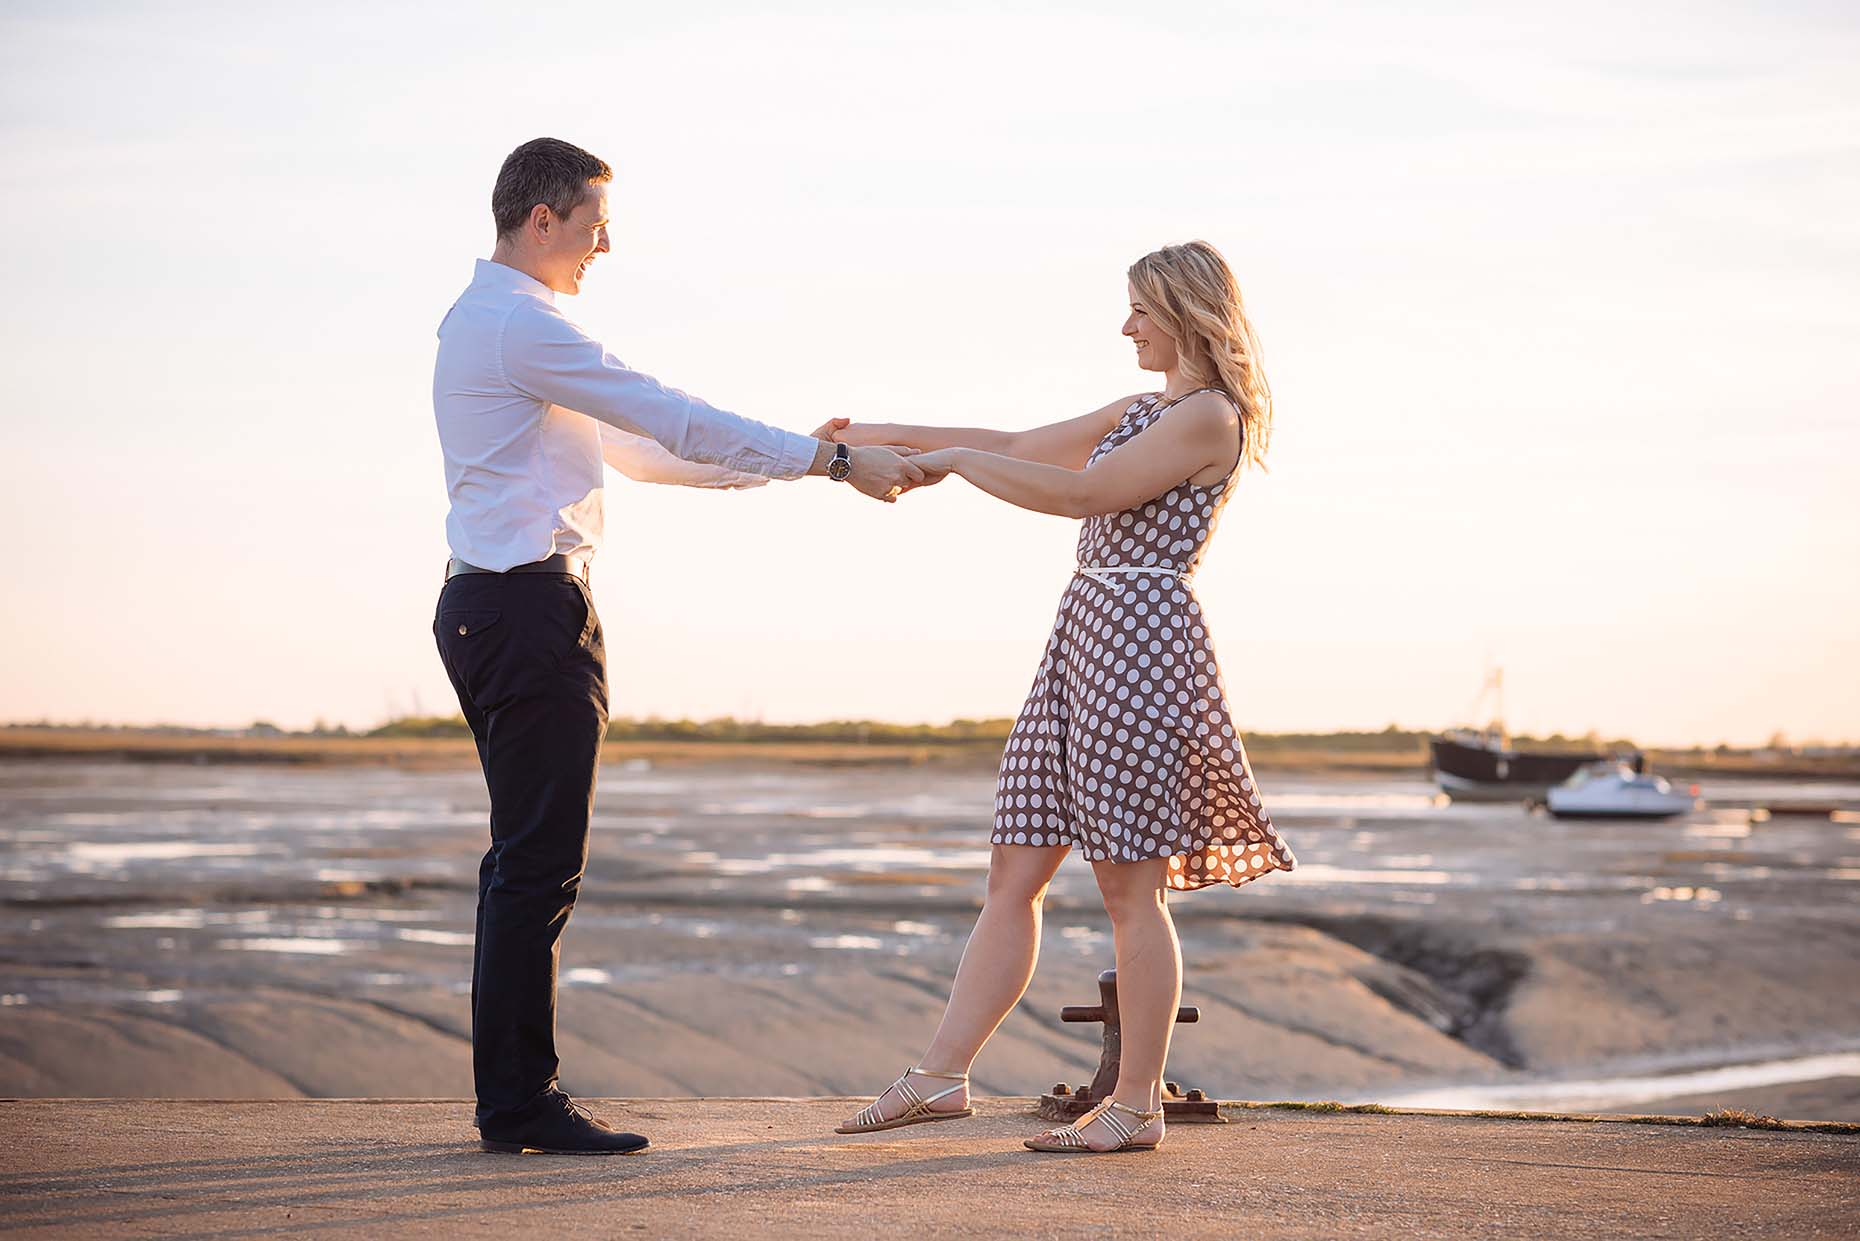 simon-southend-on-sea-engagement-shoot-summer-dance-06